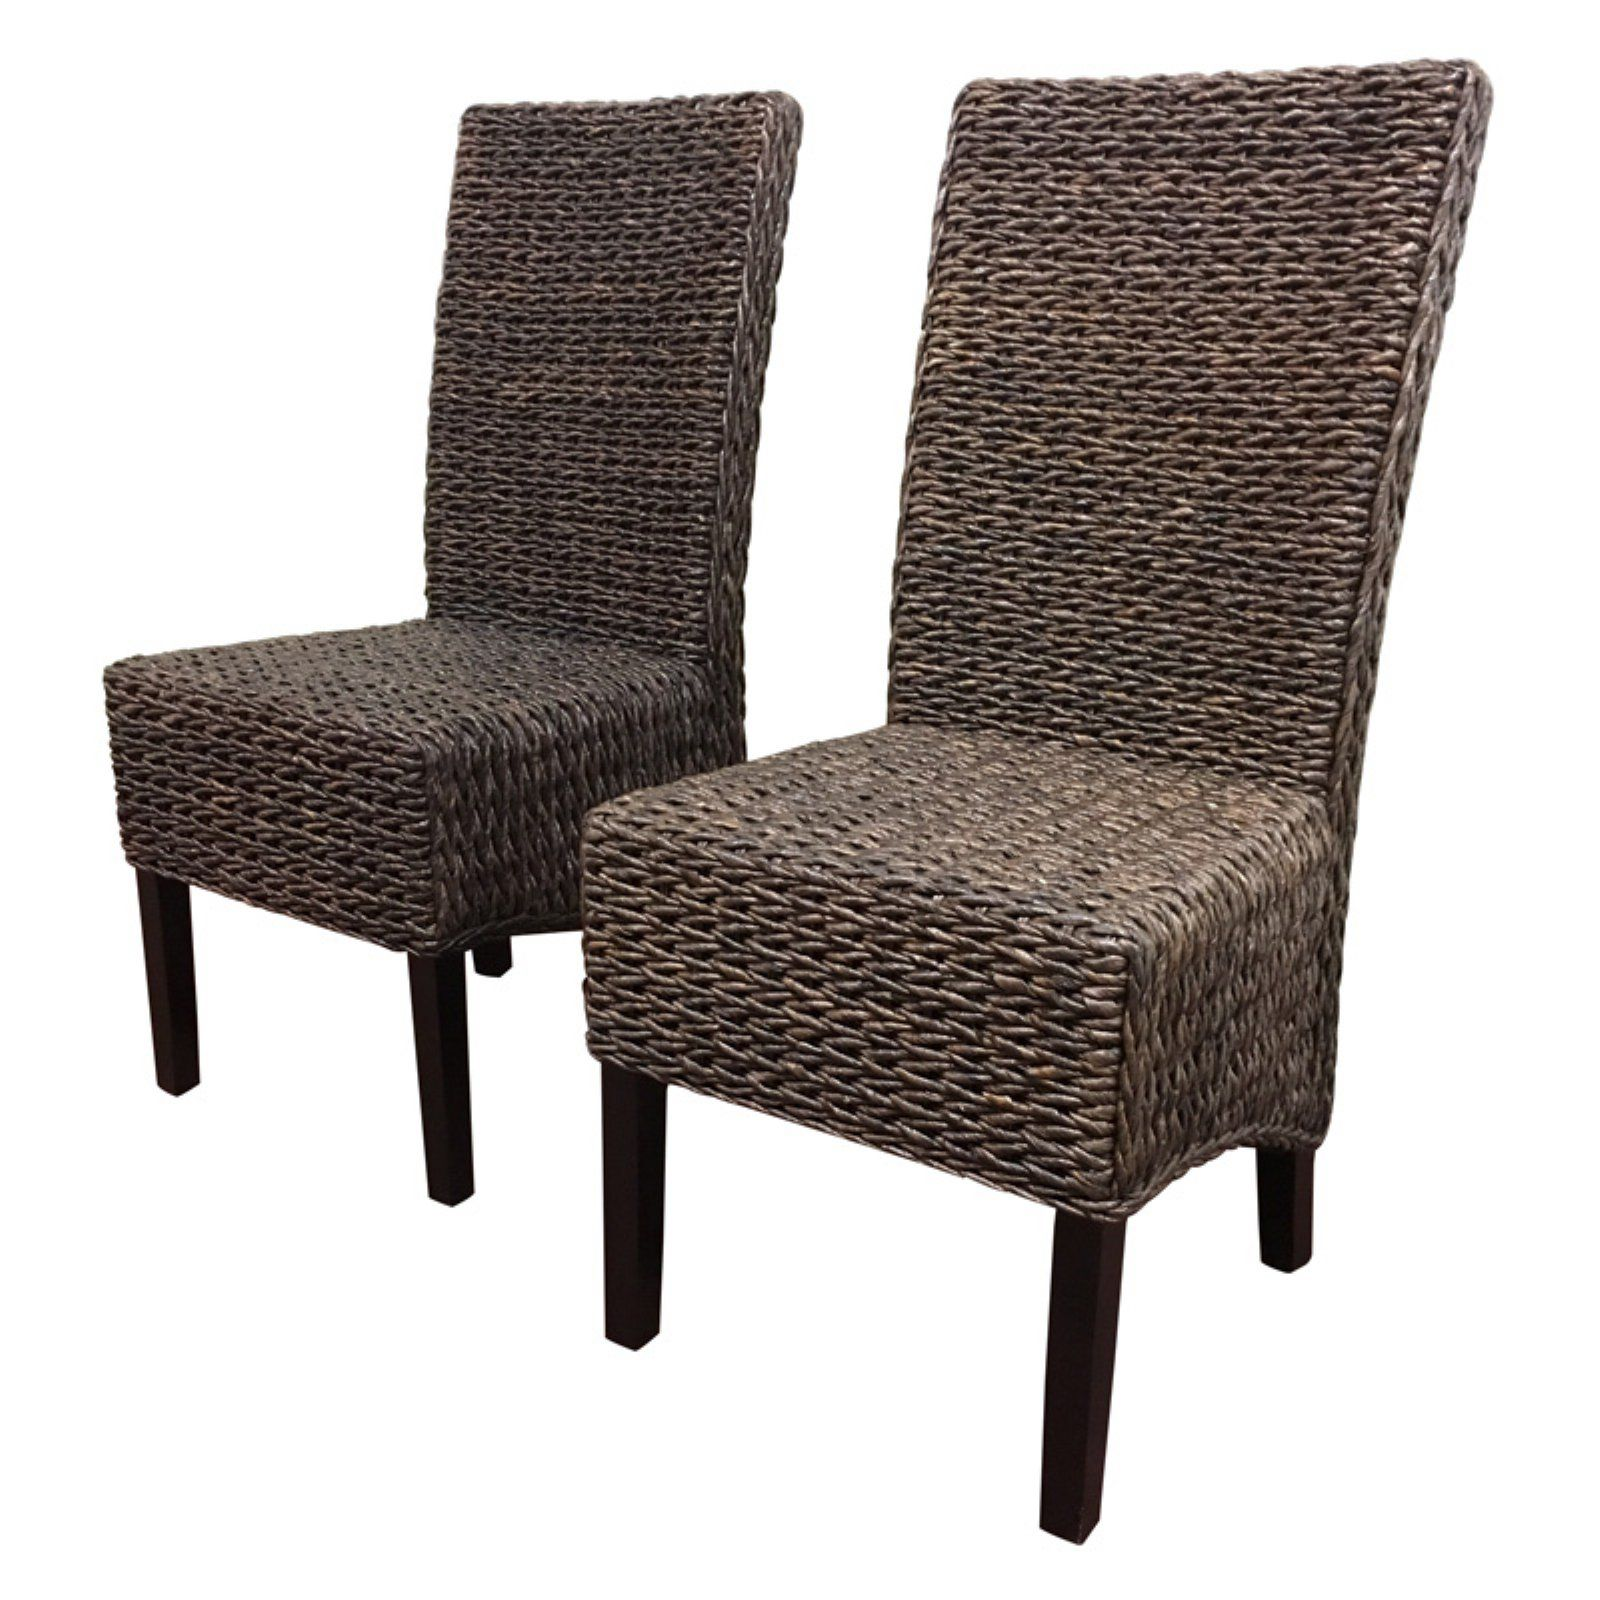 Seagrass Dining Chair Wicker Paradise Barbados Seagrass Dining Chair Set Of 2 In 2019